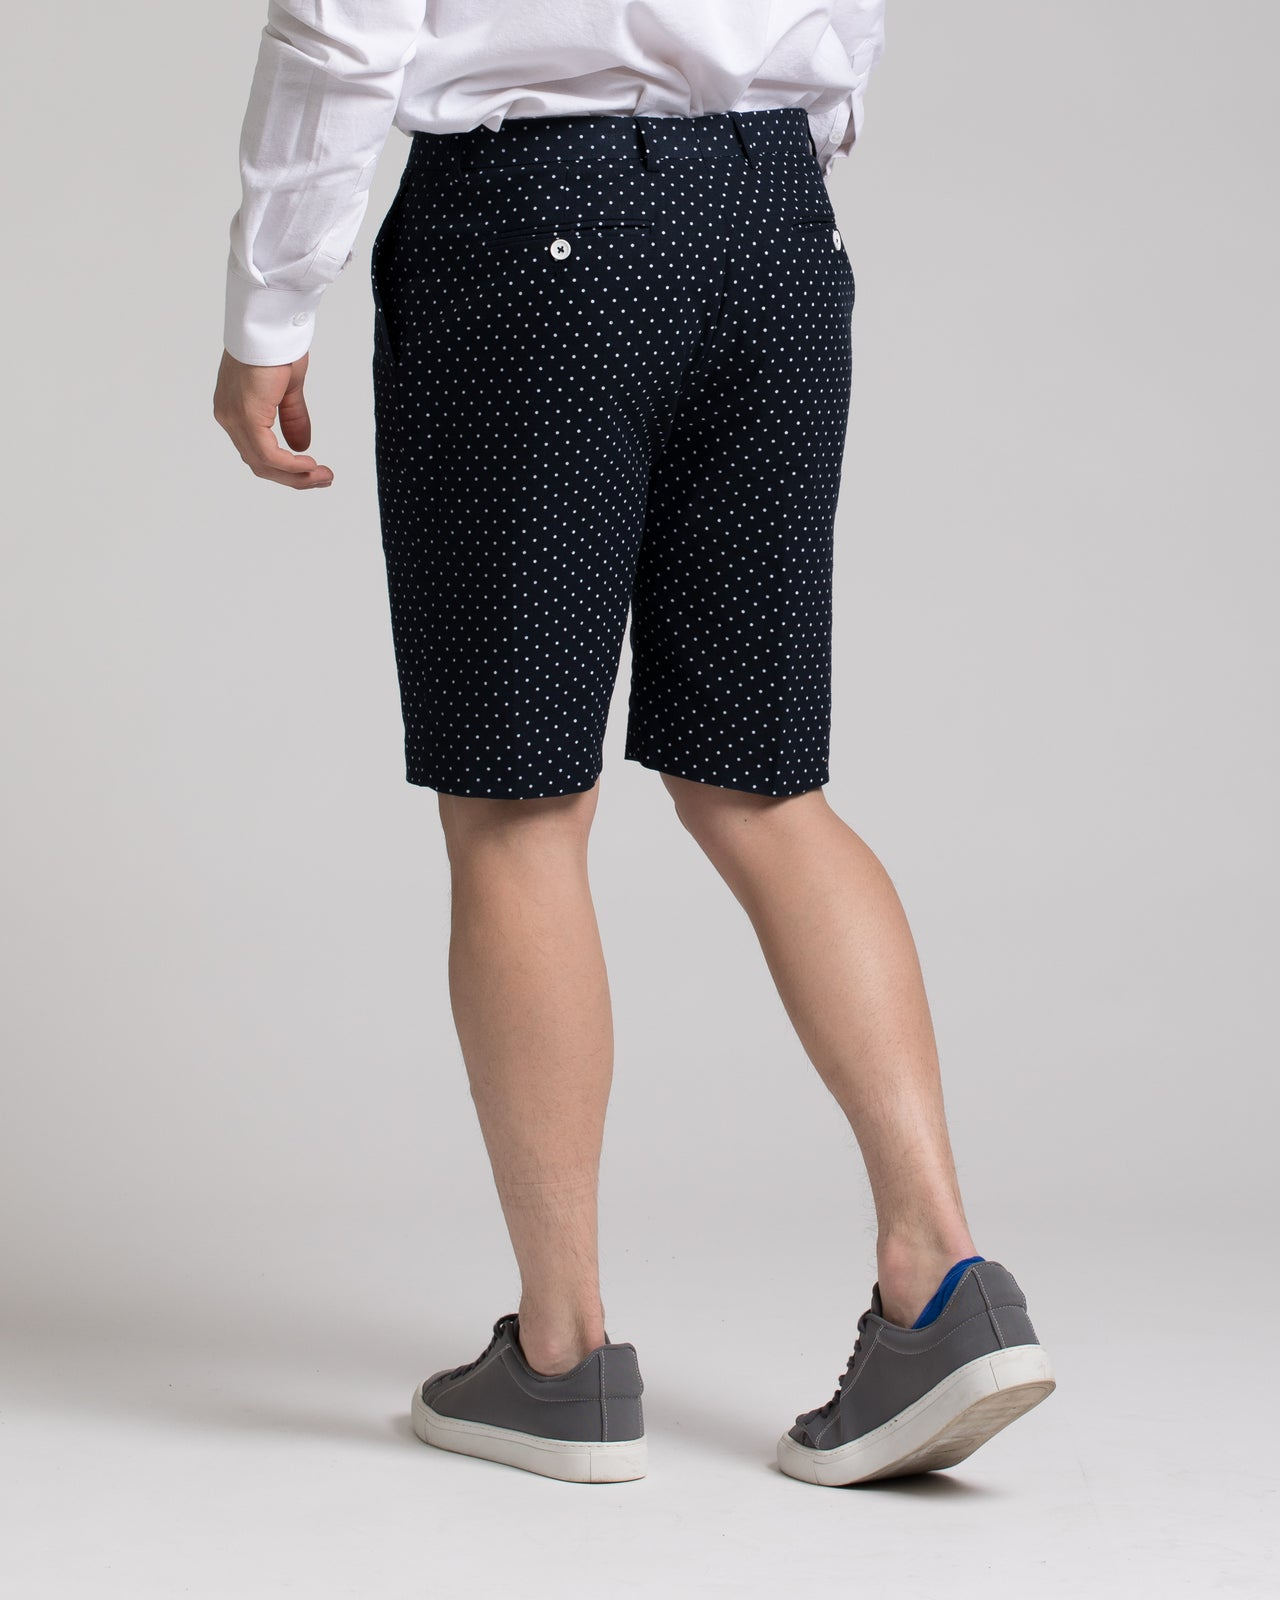 Fairview Shorts - Color: Navy & White Polkadot | Blue